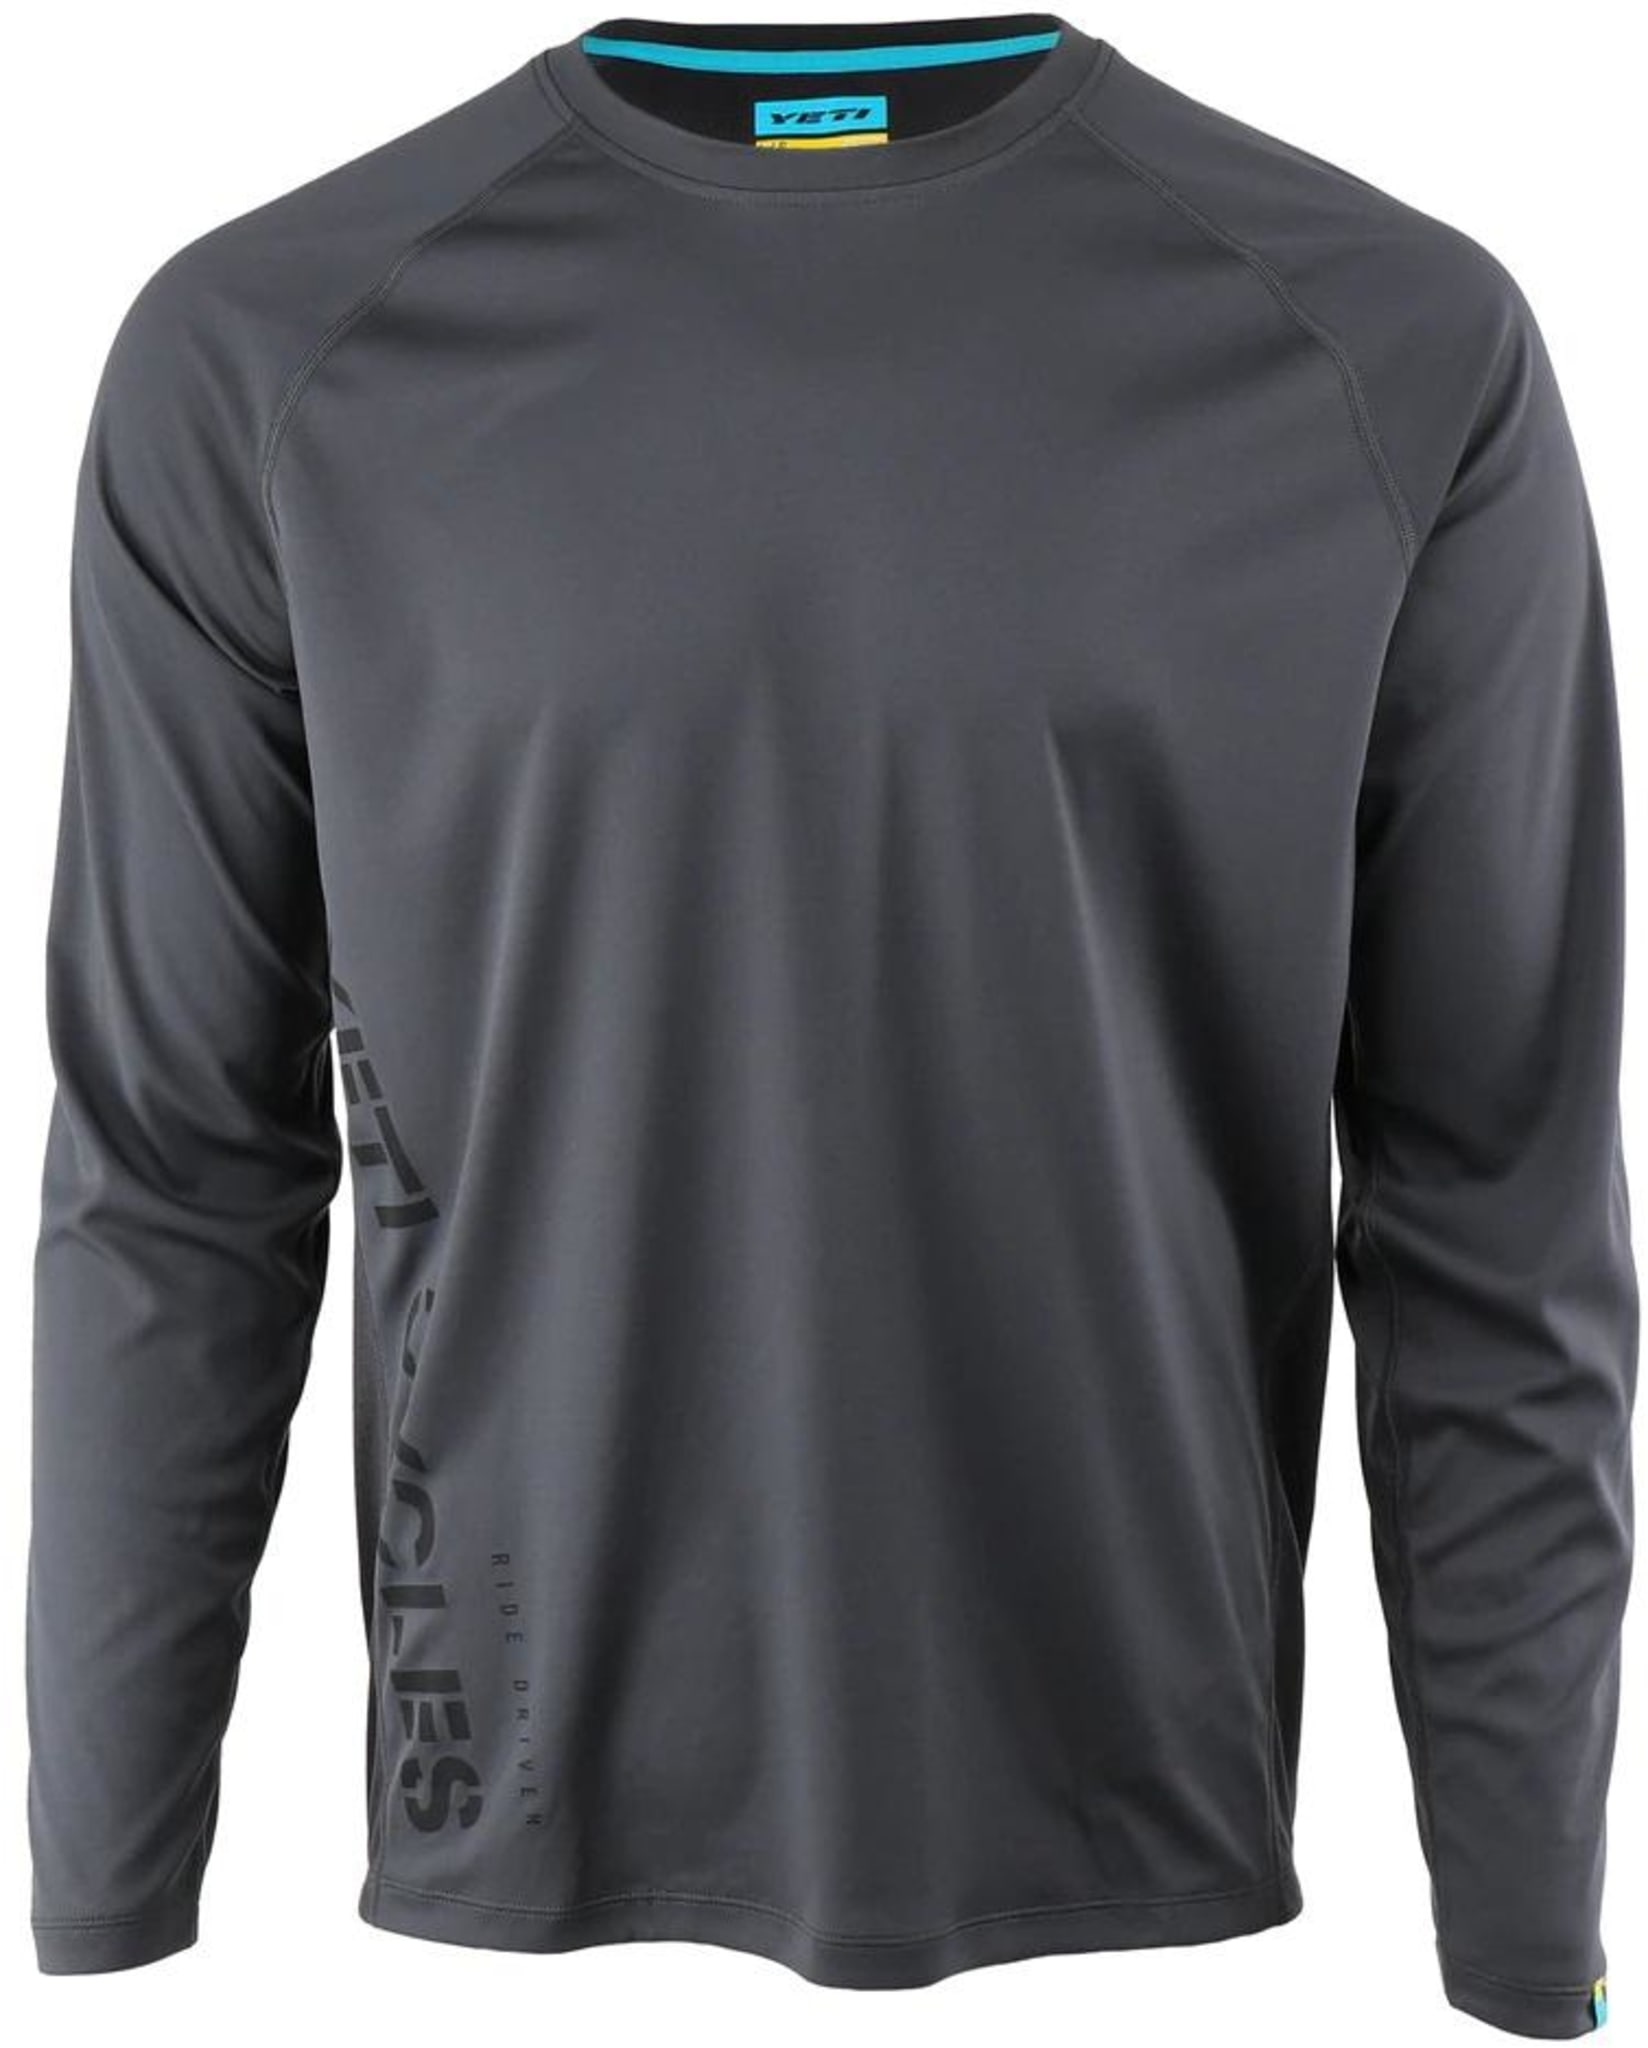 Tolland L/S Jersey M